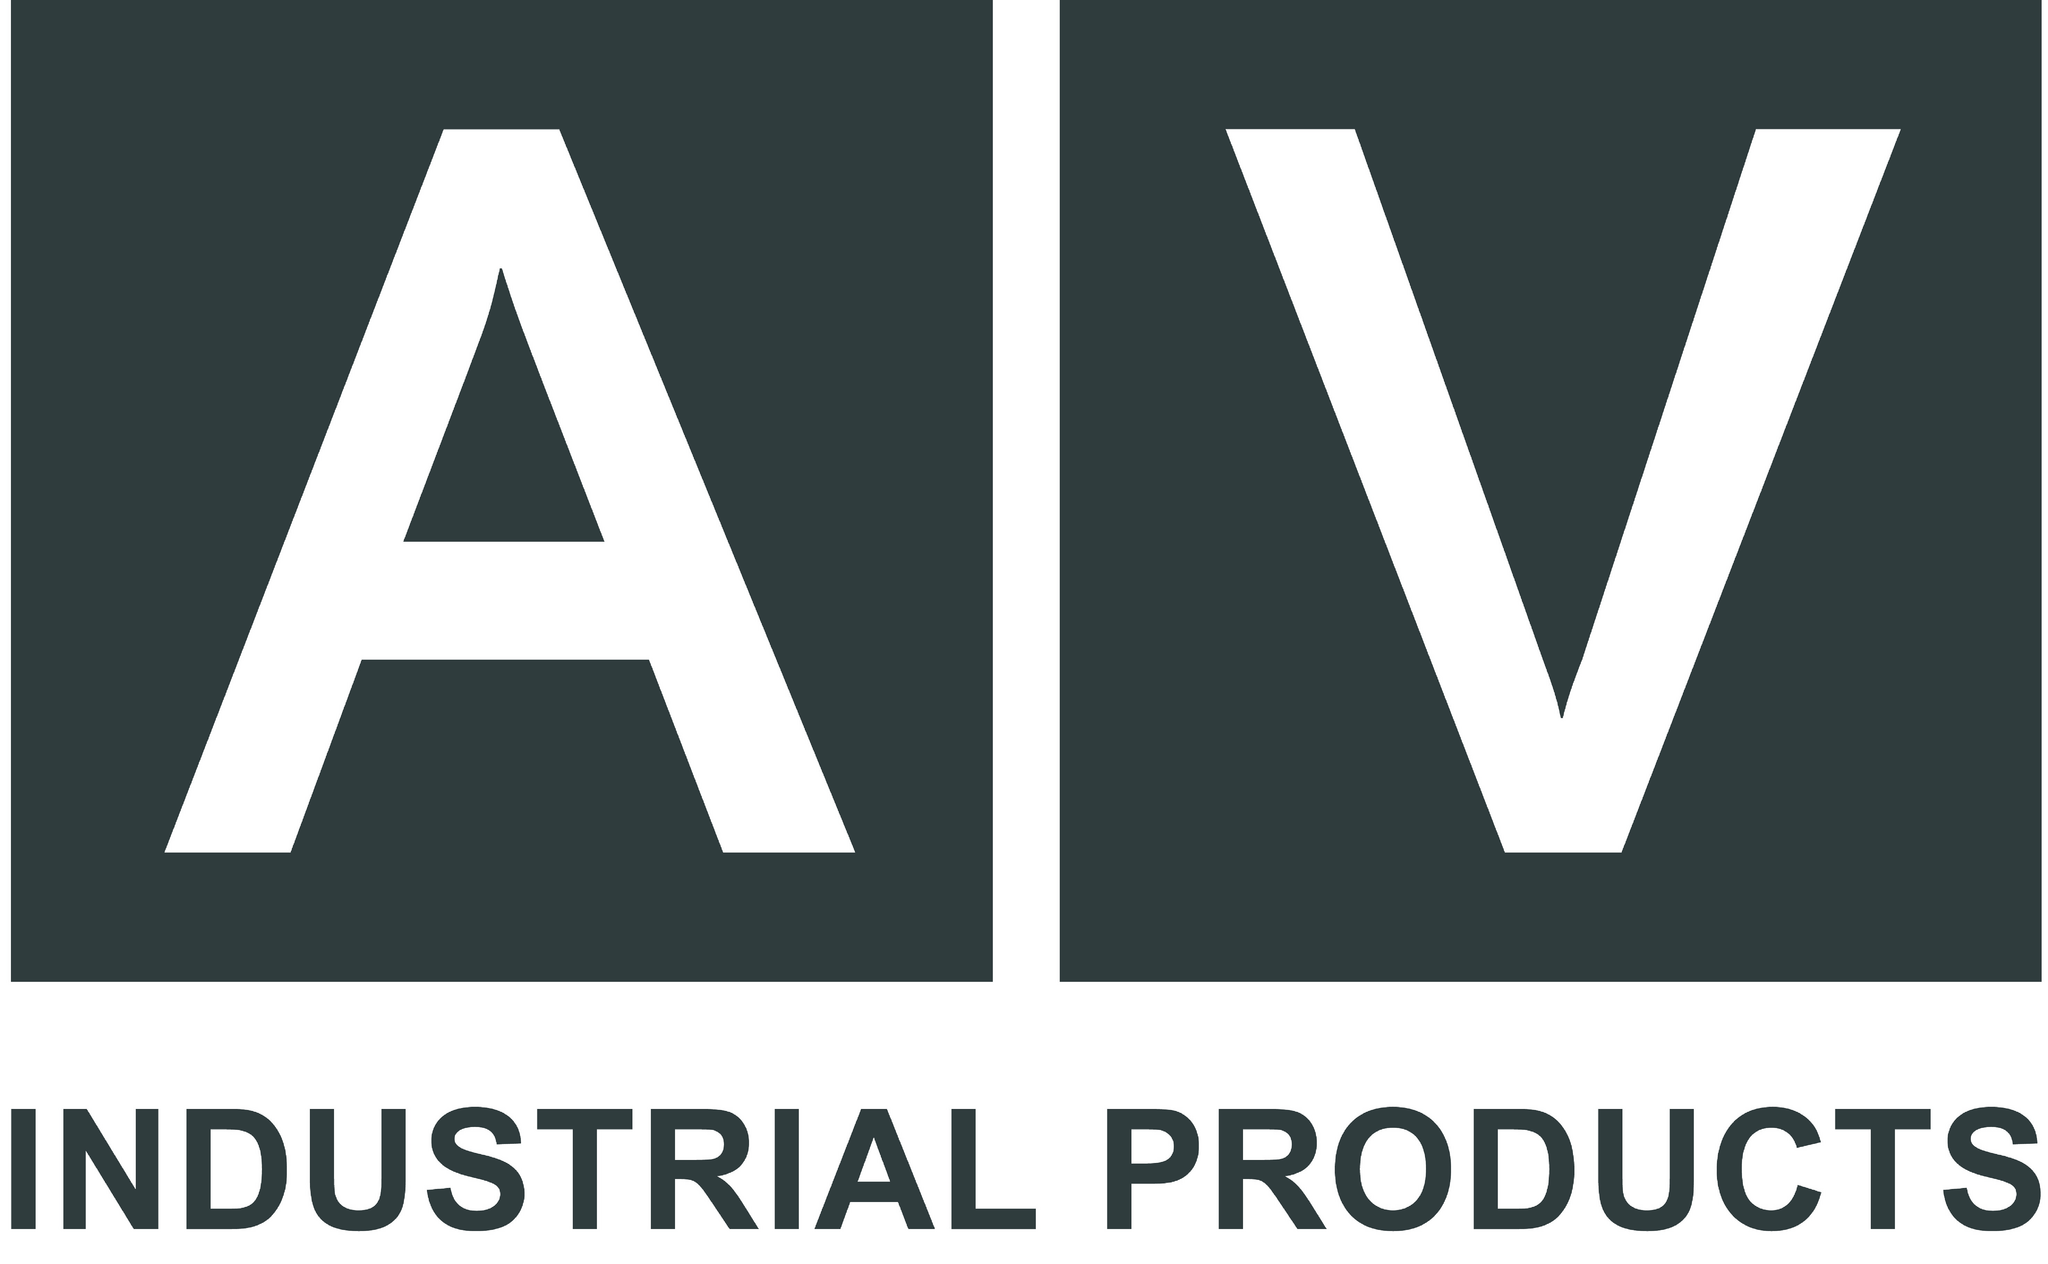 AV Industrial Products Ltd